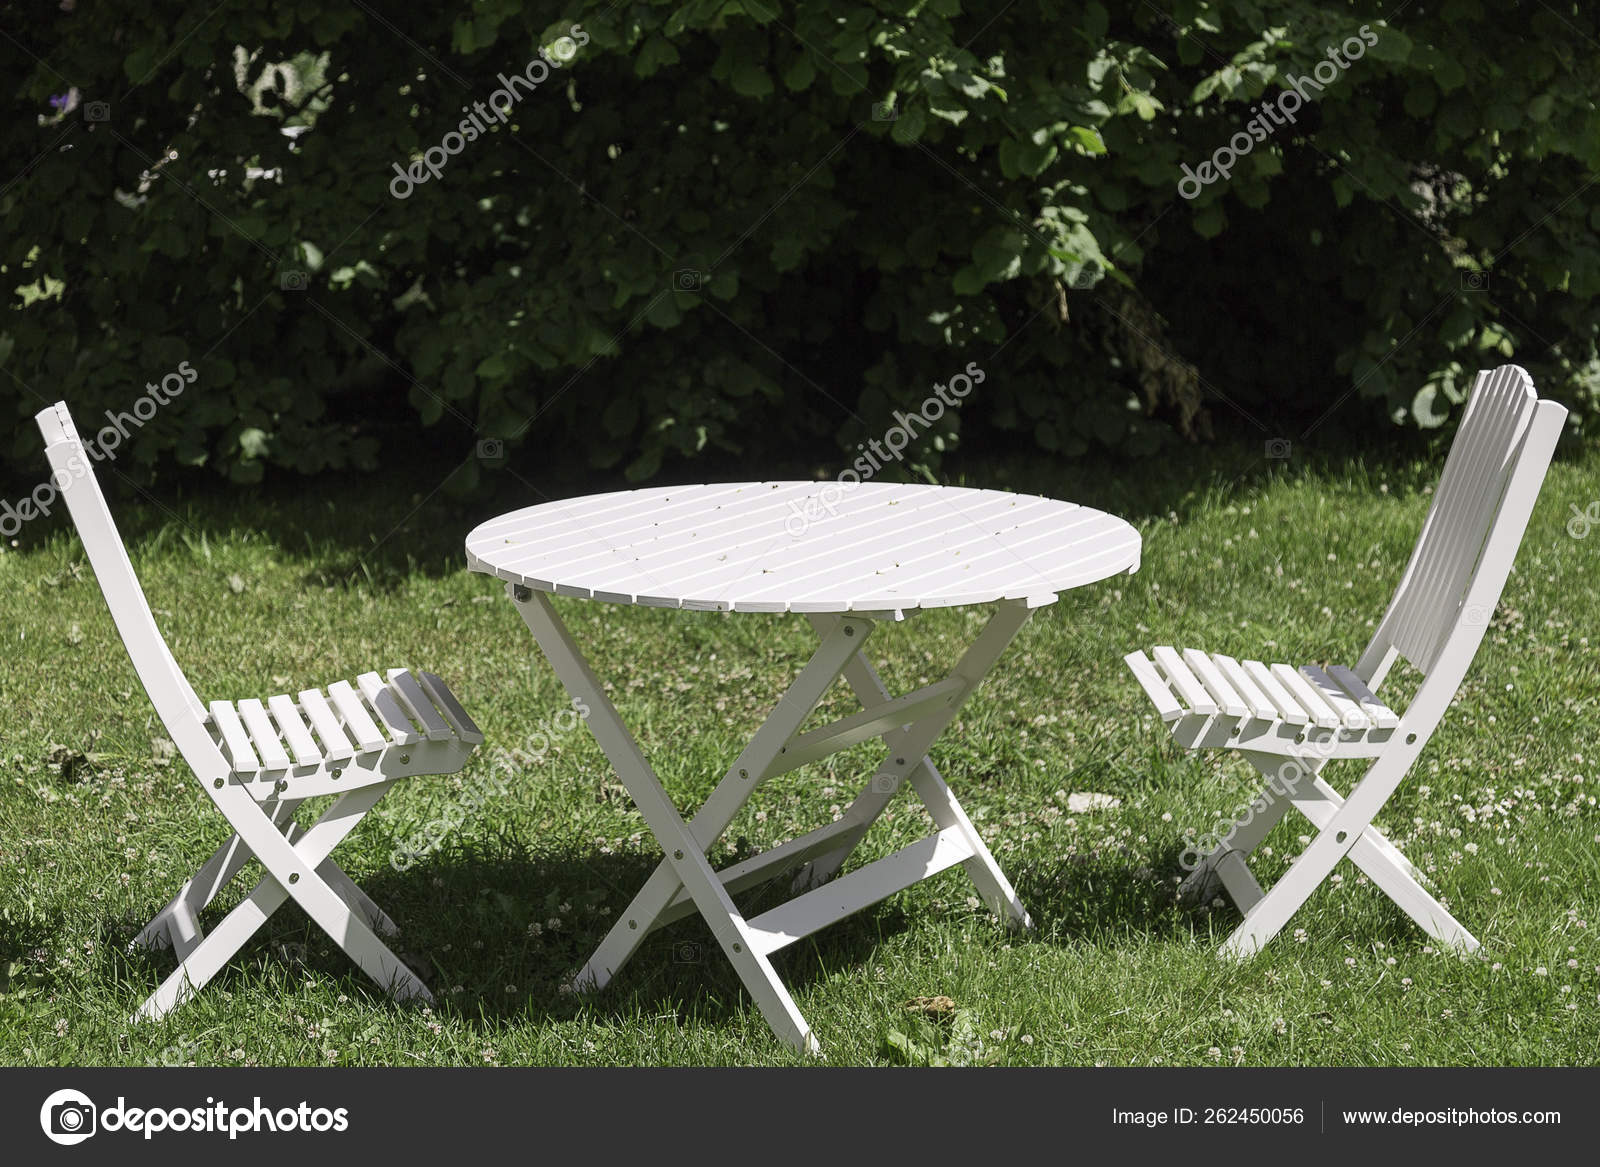 White Garden Chairs Table Green Grass Stock Photo C Yayimages 262450056